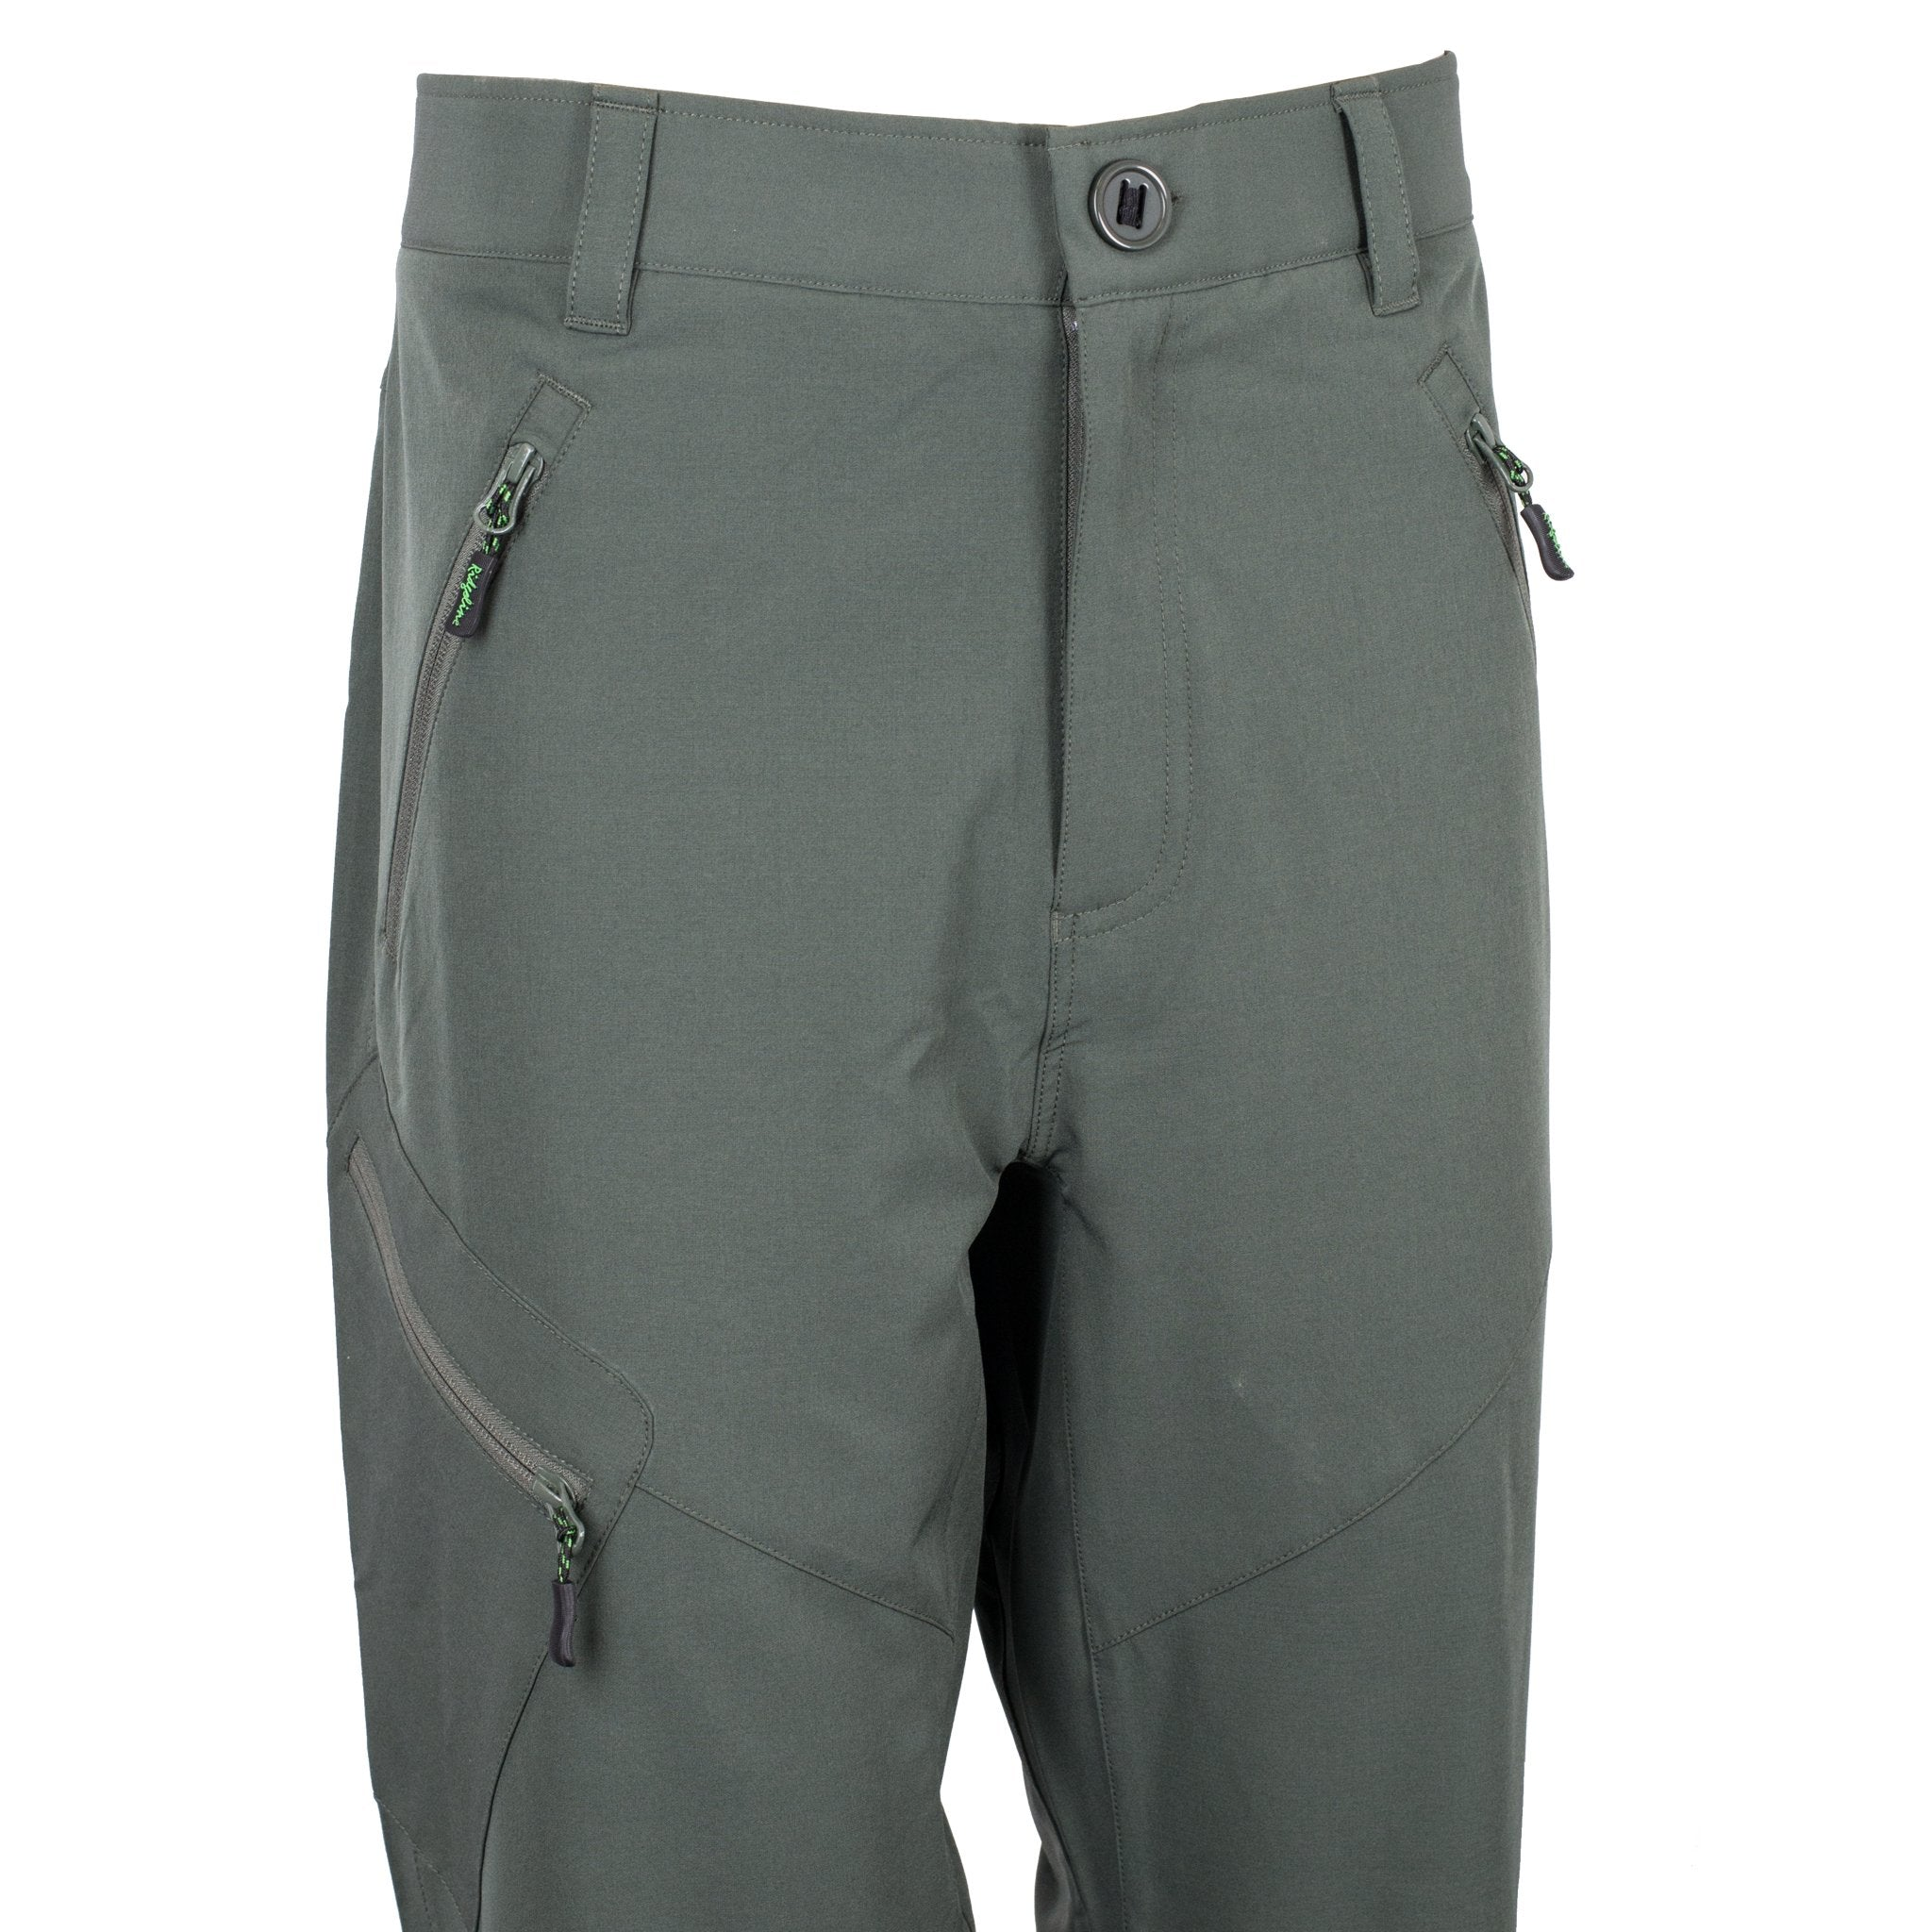 Mens Stealth Pants